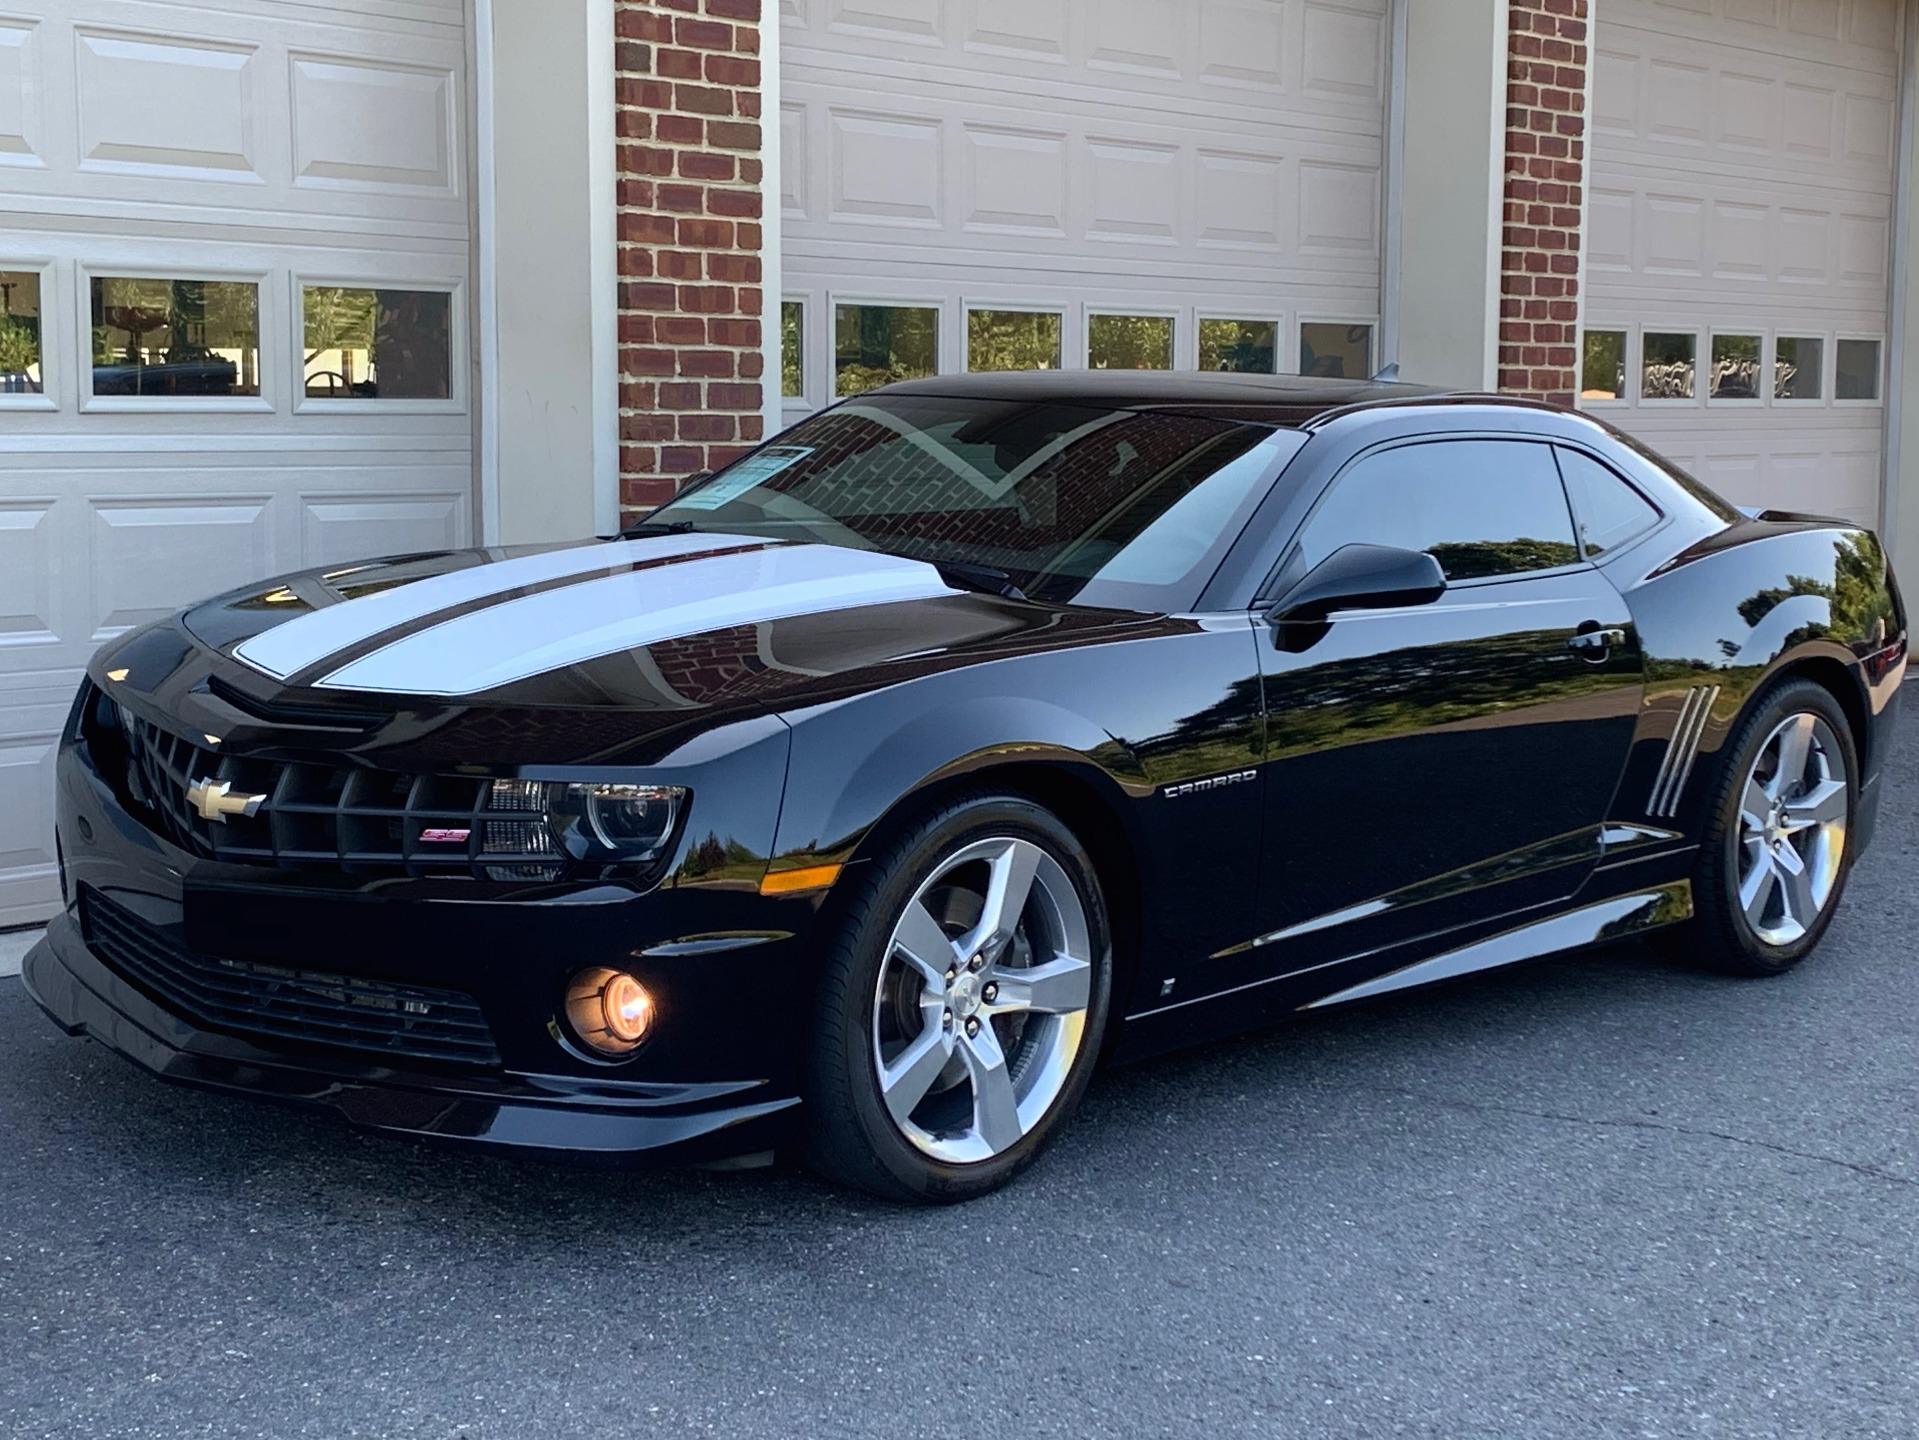 Used-2010-Chevrolet-Camaro-SS-SuperCharged-700HP